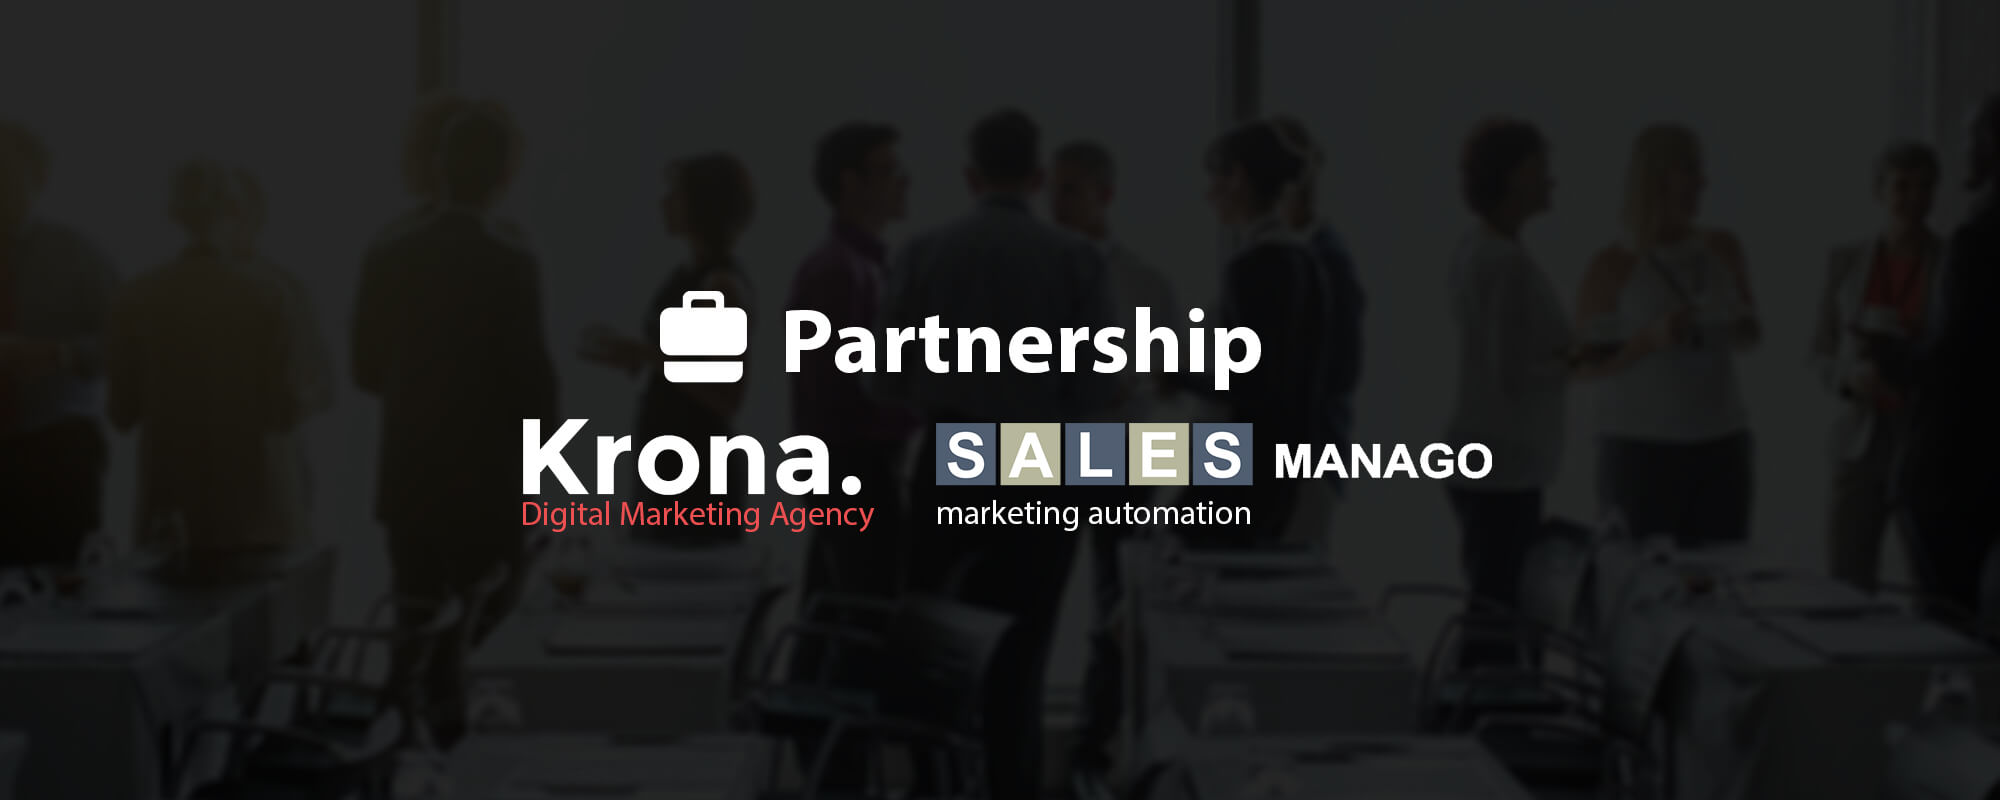 krona salesmanago marketing automation